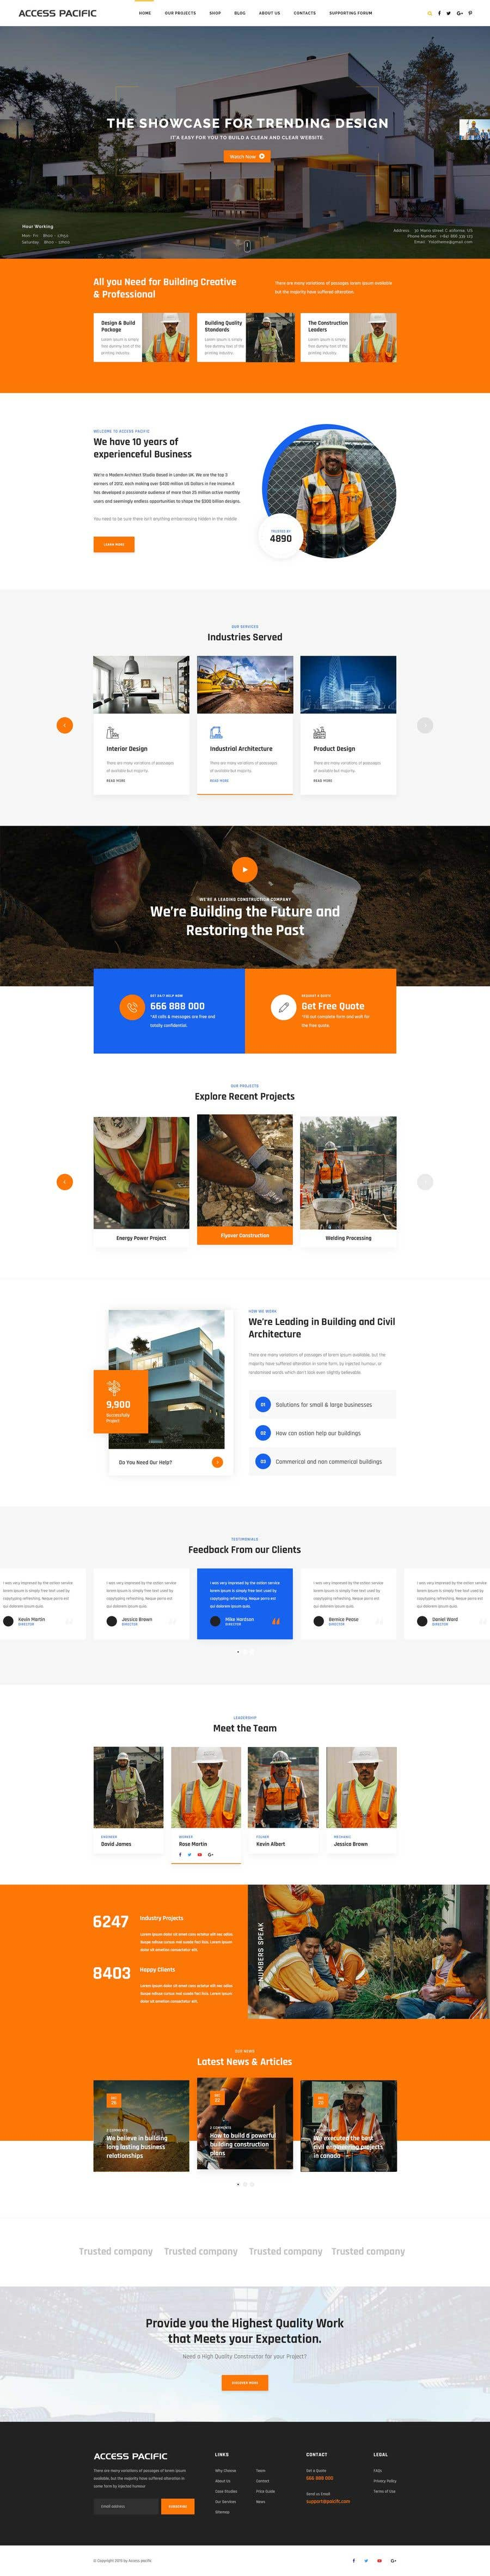 Konkurrenceindlæg #44 for Design a new homepage for a construction company.